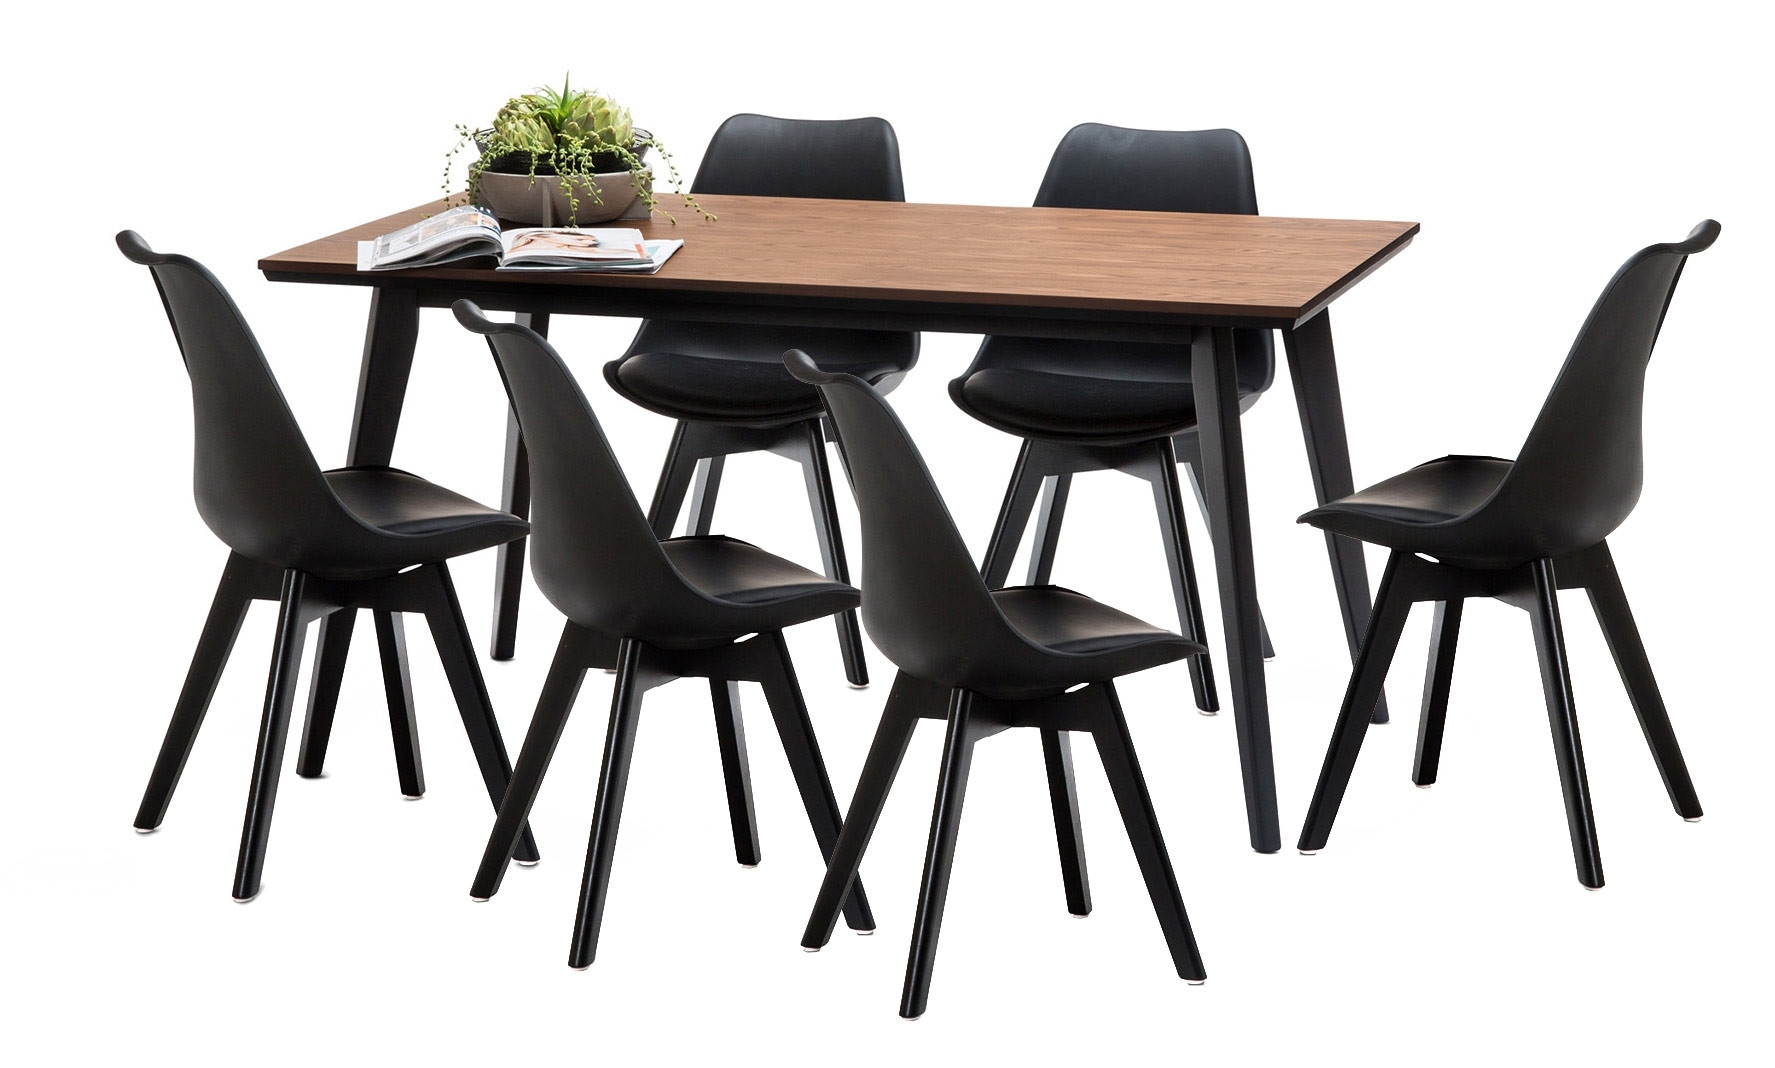 Wyatt Dining Table Set With 6 Padded Eames Replica Chairs | Temple Throughout Most Recently Released Wyatt Dining Tables (Image 17 of 20)